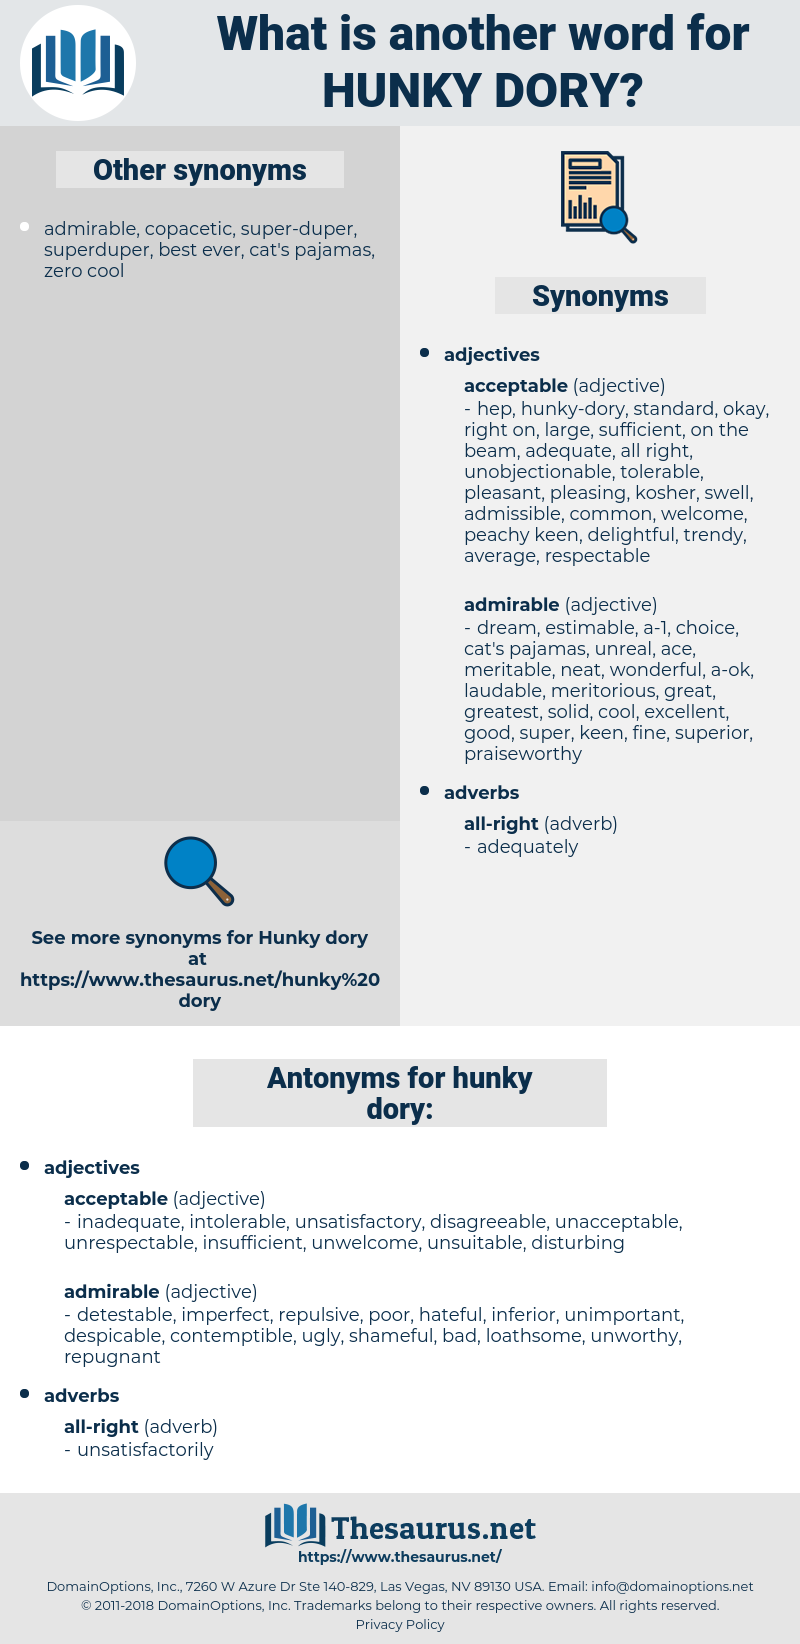 hunky-dory, synonym hunky-dory, another word for hunky-dory, words like hunky-dory, thesaurus hunky-dory